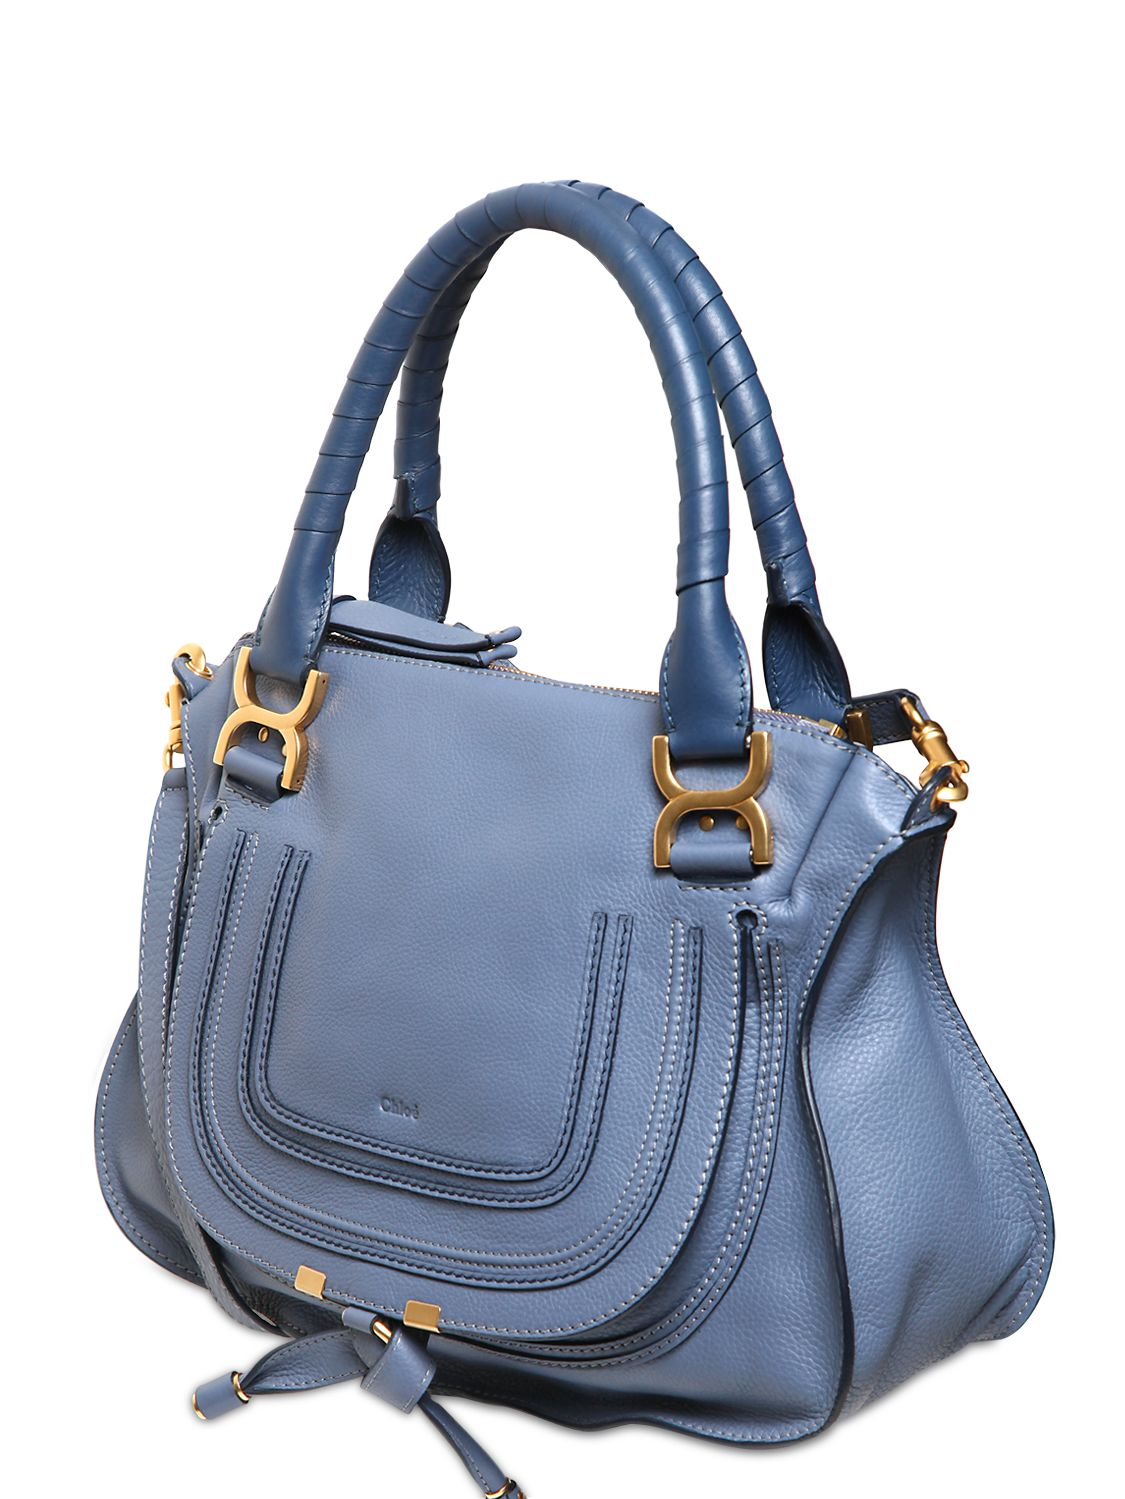 Chlo¨¦ Medium Marcie Textured Leather Bag in Blue (STREET BLUE) | Lyst